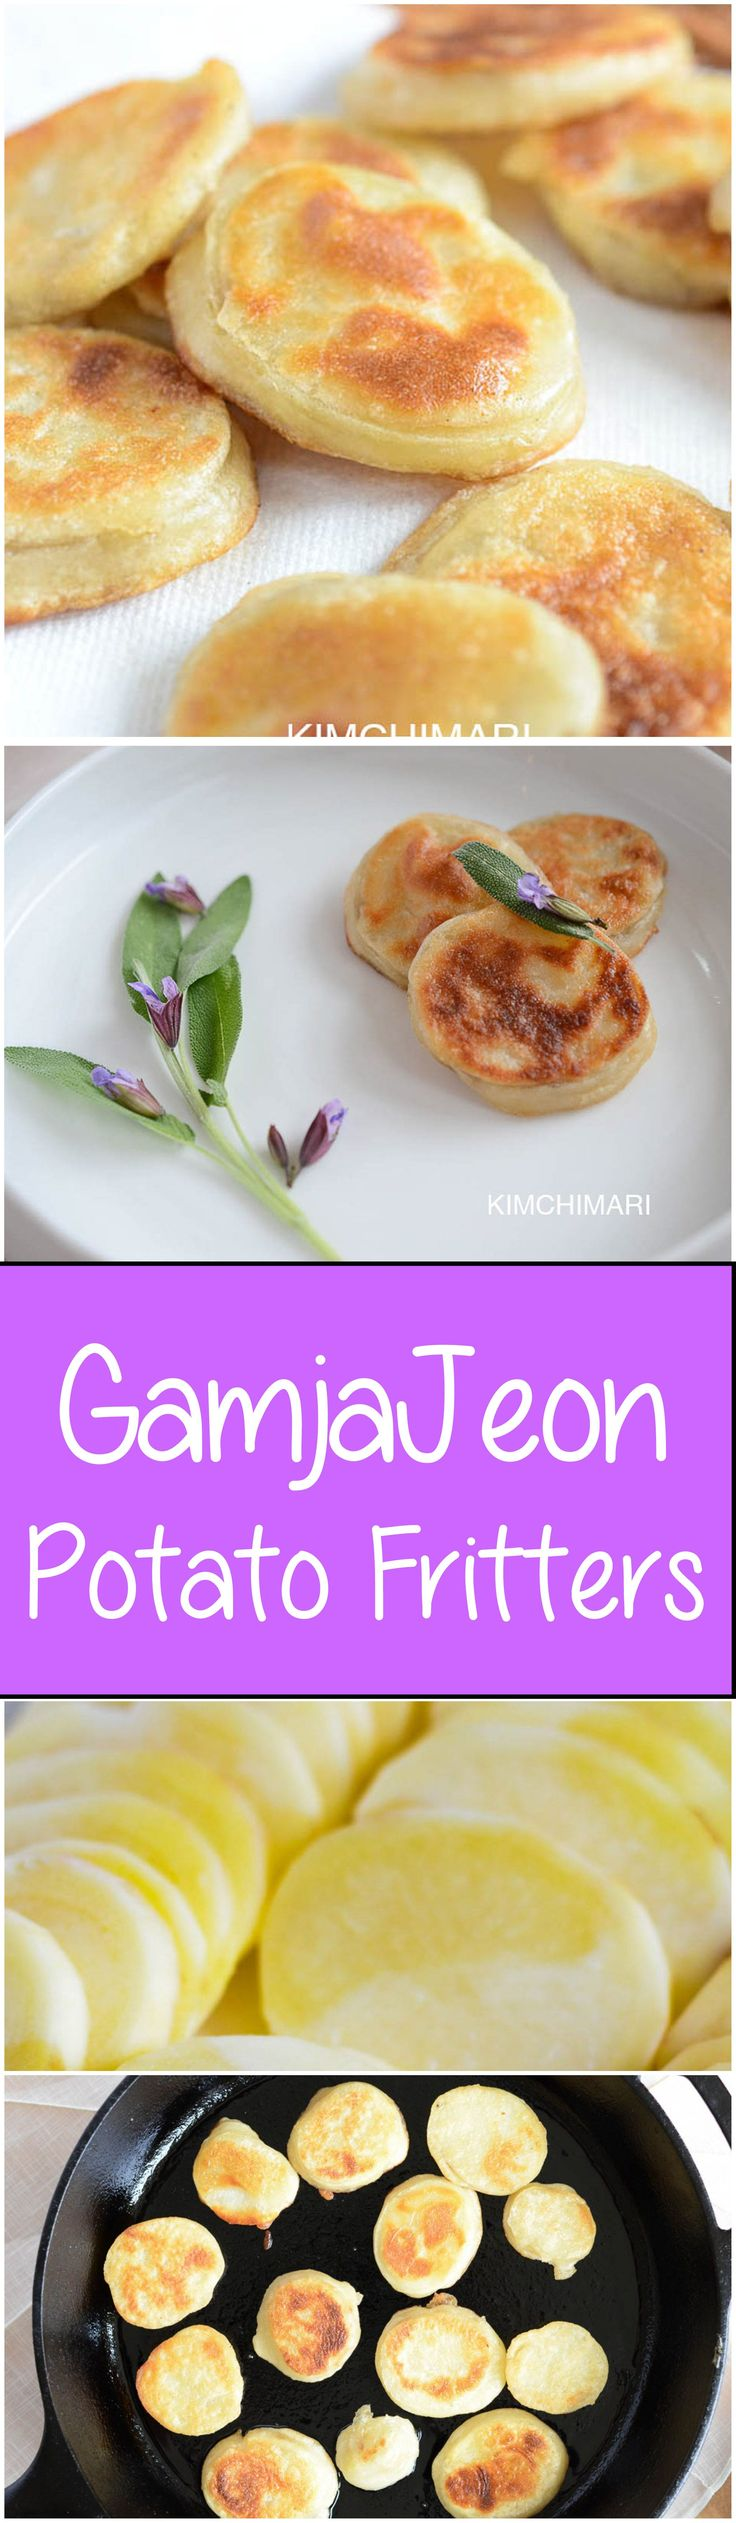 Korean potato fritters (Gamjajeon) is so simple to make yet so delicious. It makes a great snack or side dish/appetizer. With a crispy skin and a soft potato inside, you won't be able to stop eating them. | Kimchimari.com